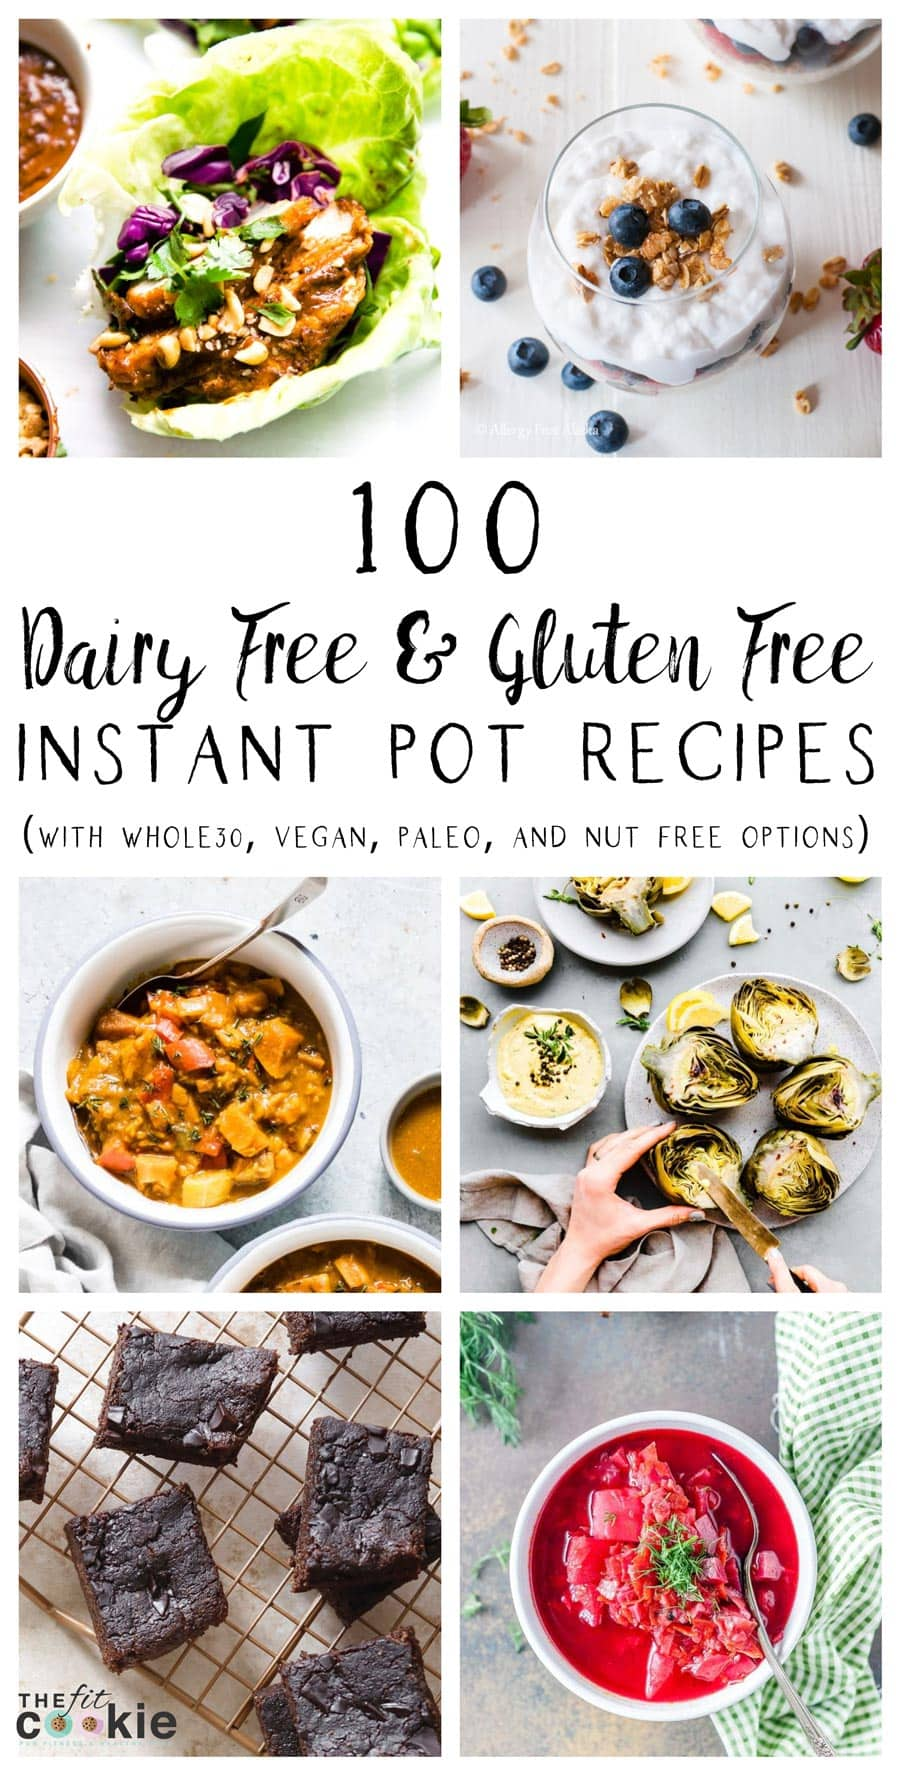 Image collage of gluten free and dairy free instant pot recipes